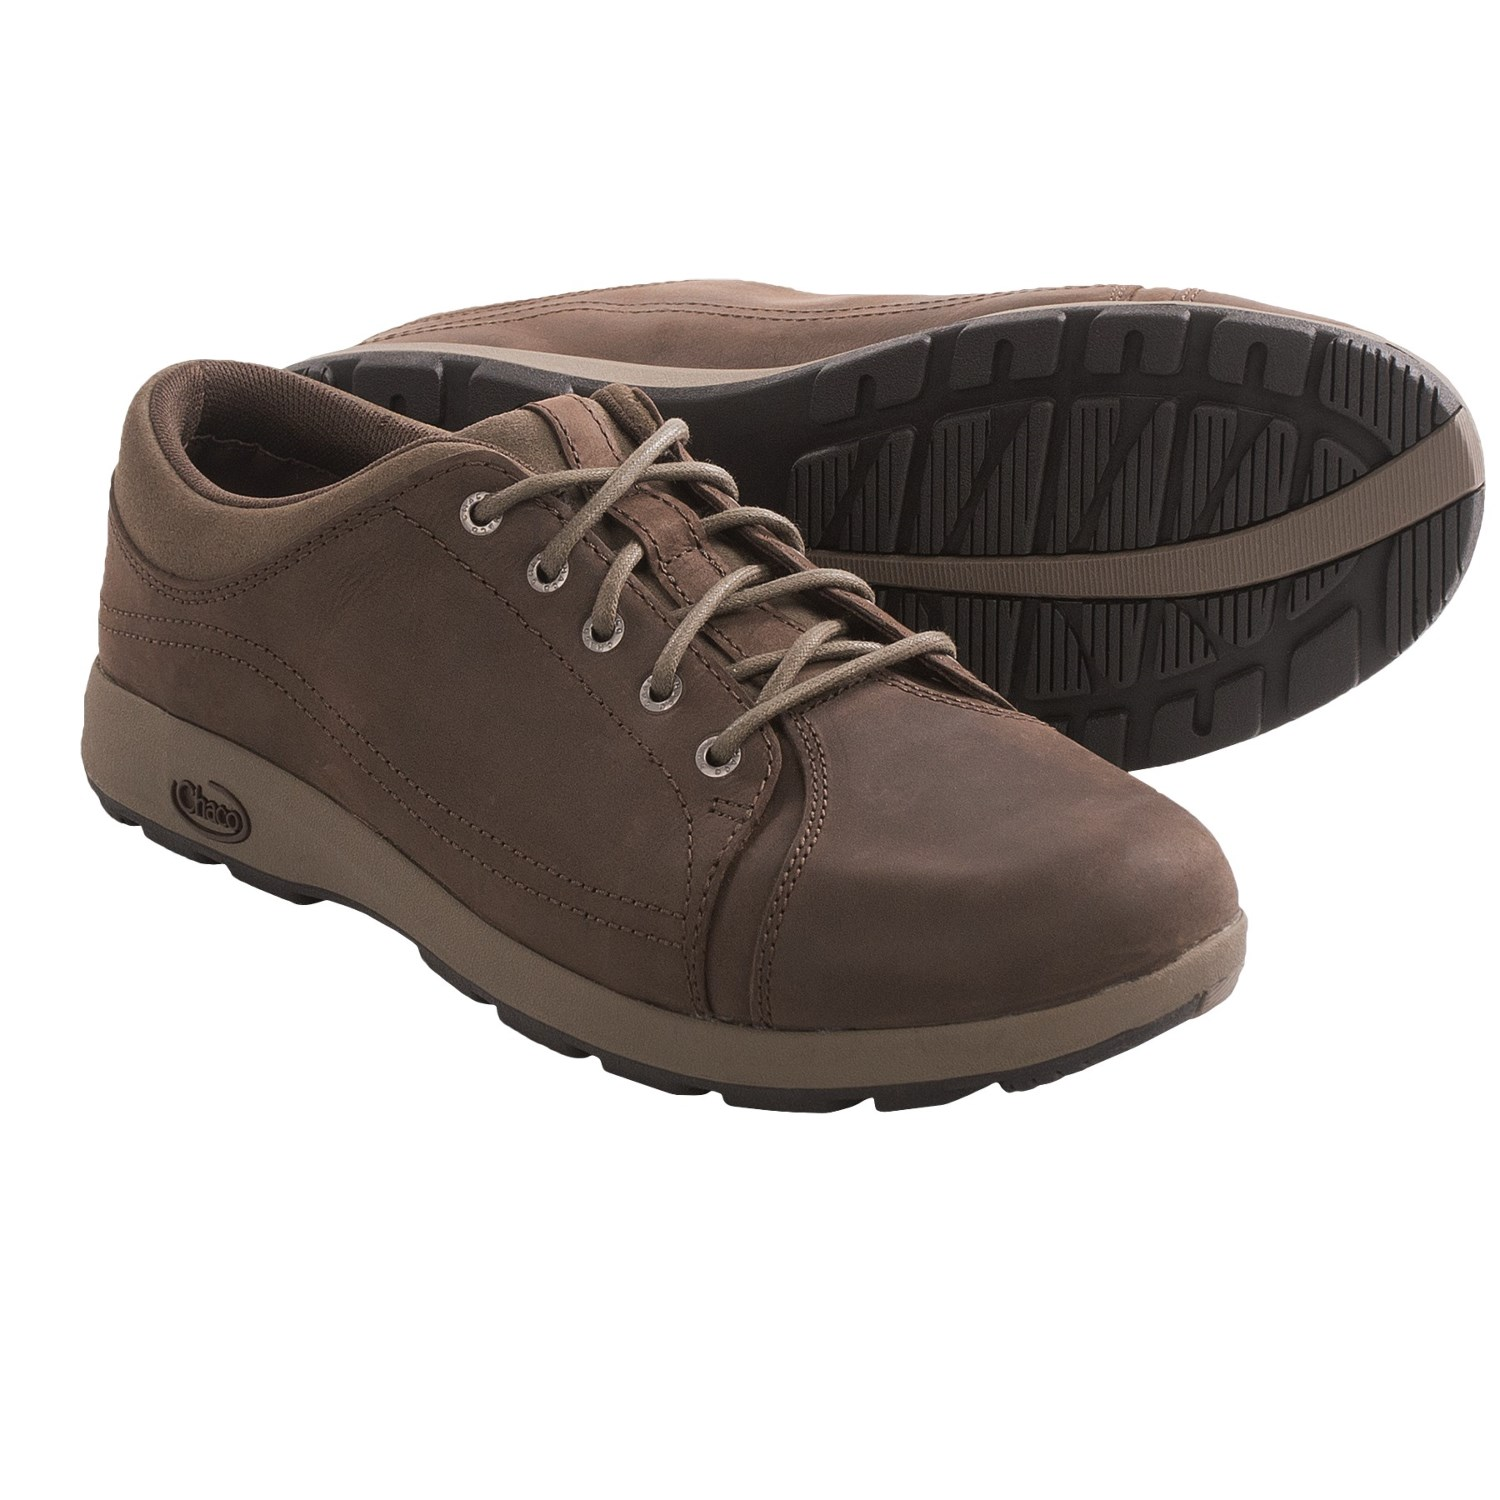 chaco ashwin casual shoes leather for save 29